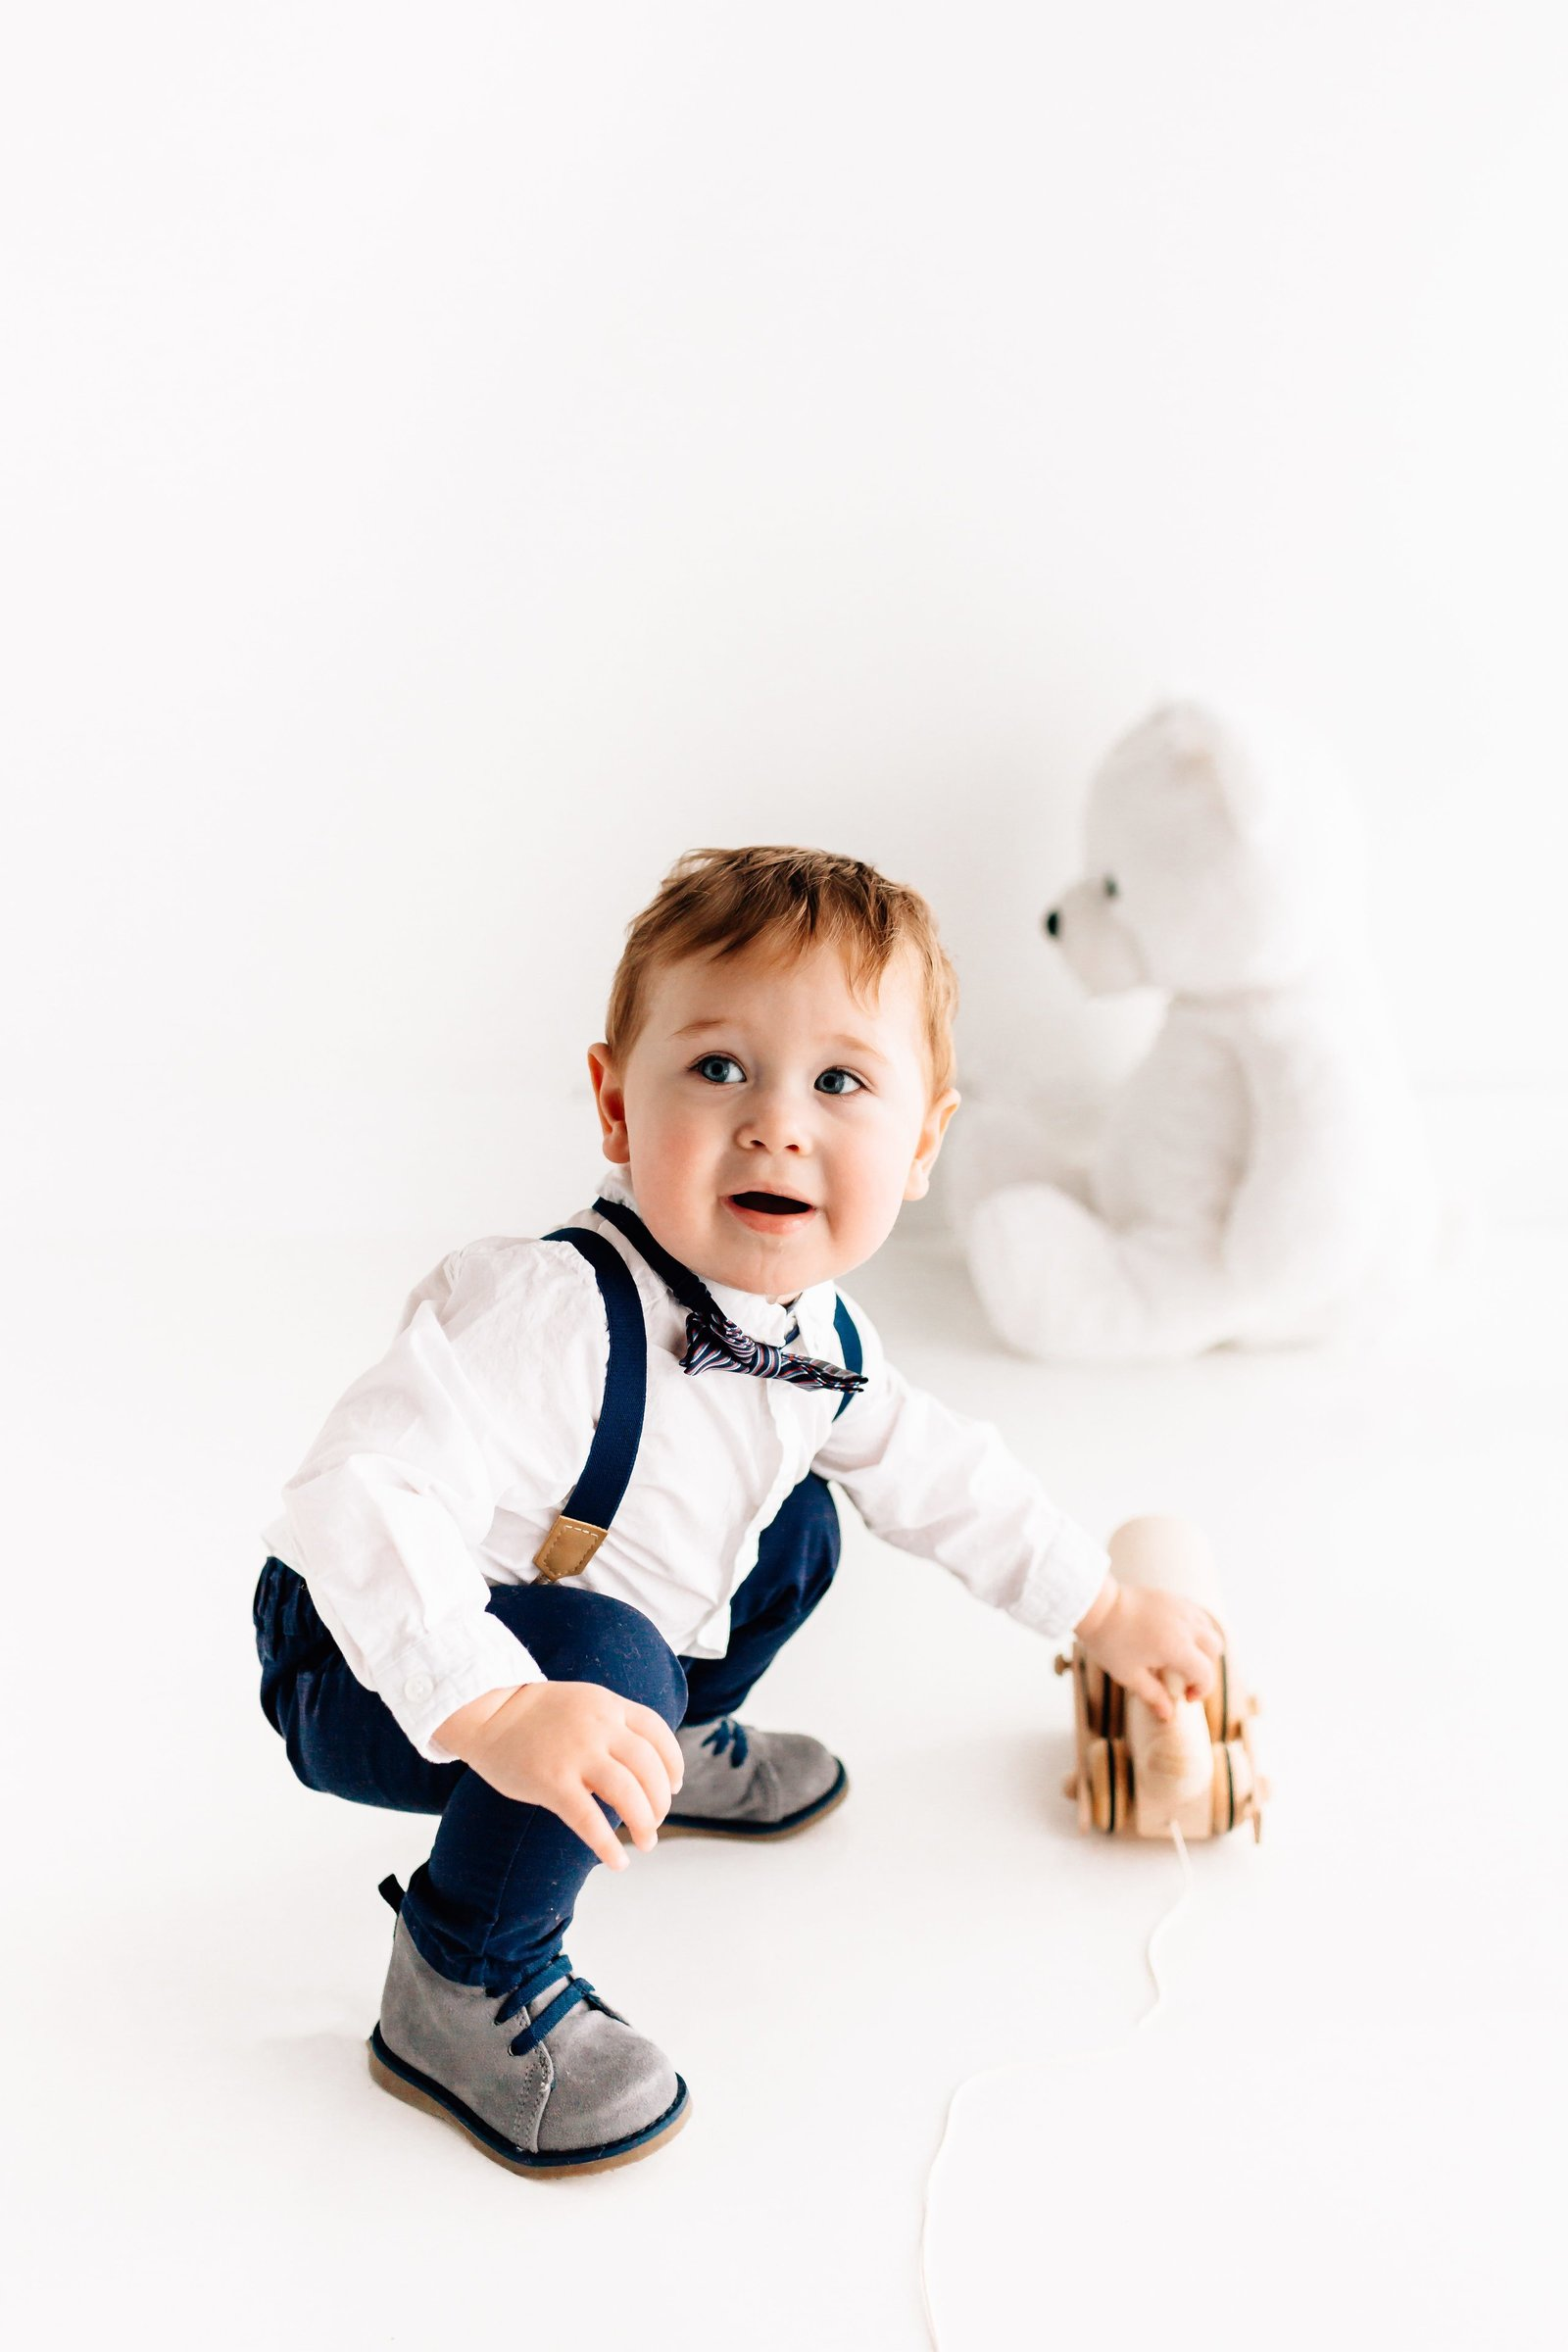 St_Louis_Baby_Photographer_Kelly_Laramore_Photography_3